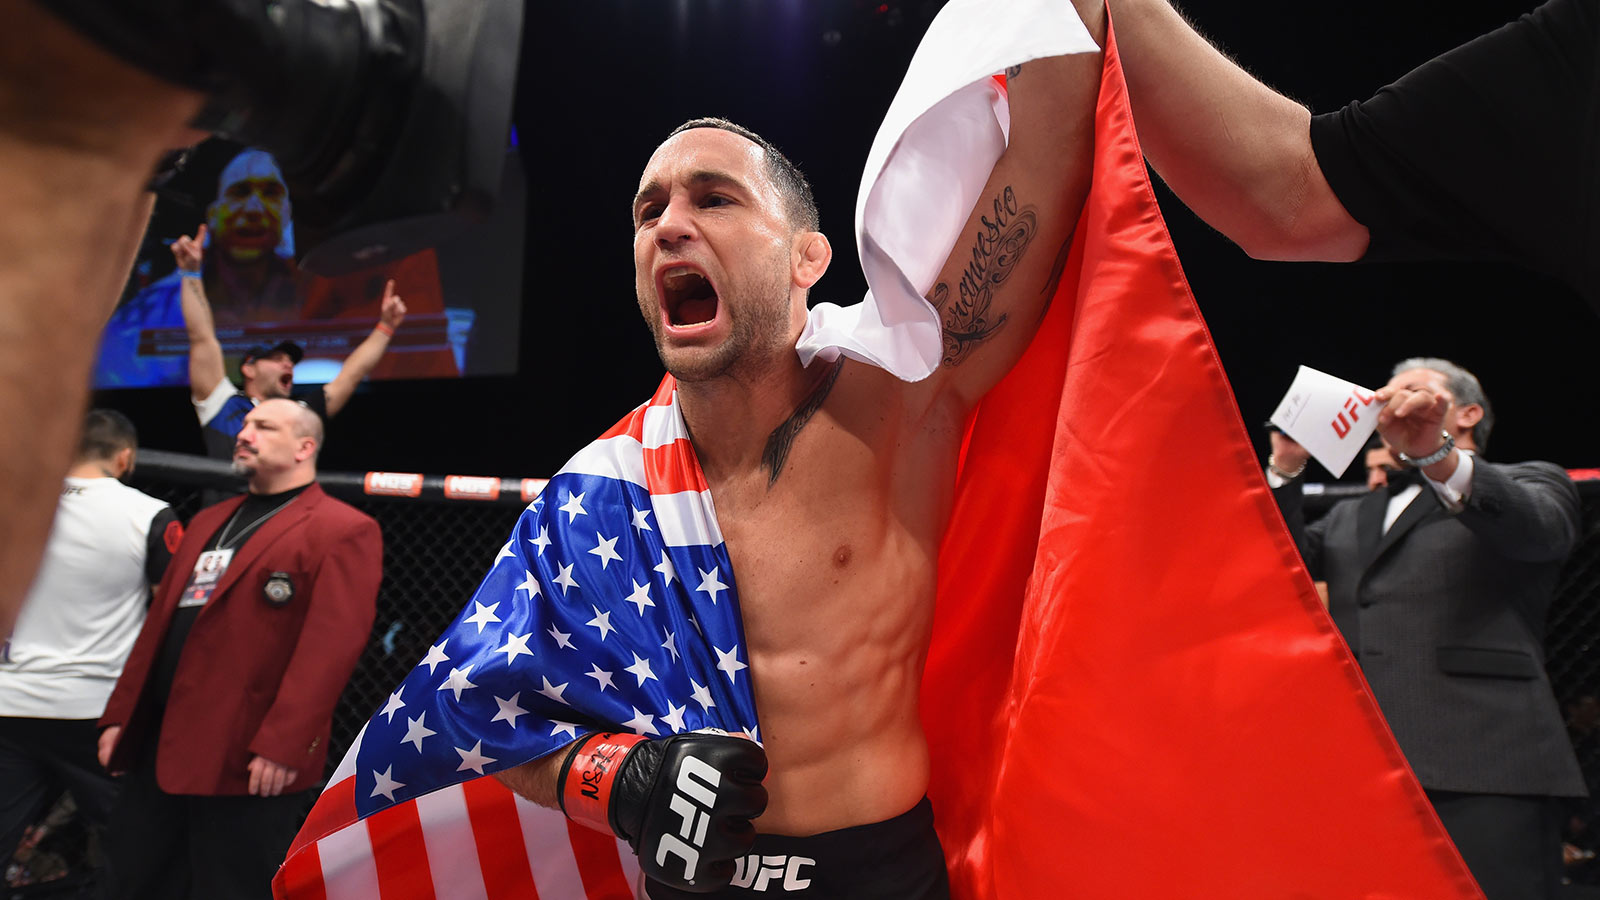 121115-UFC-Frankie-Edgar-reacts-to-his-victory-over-Chad-Mendes-PI